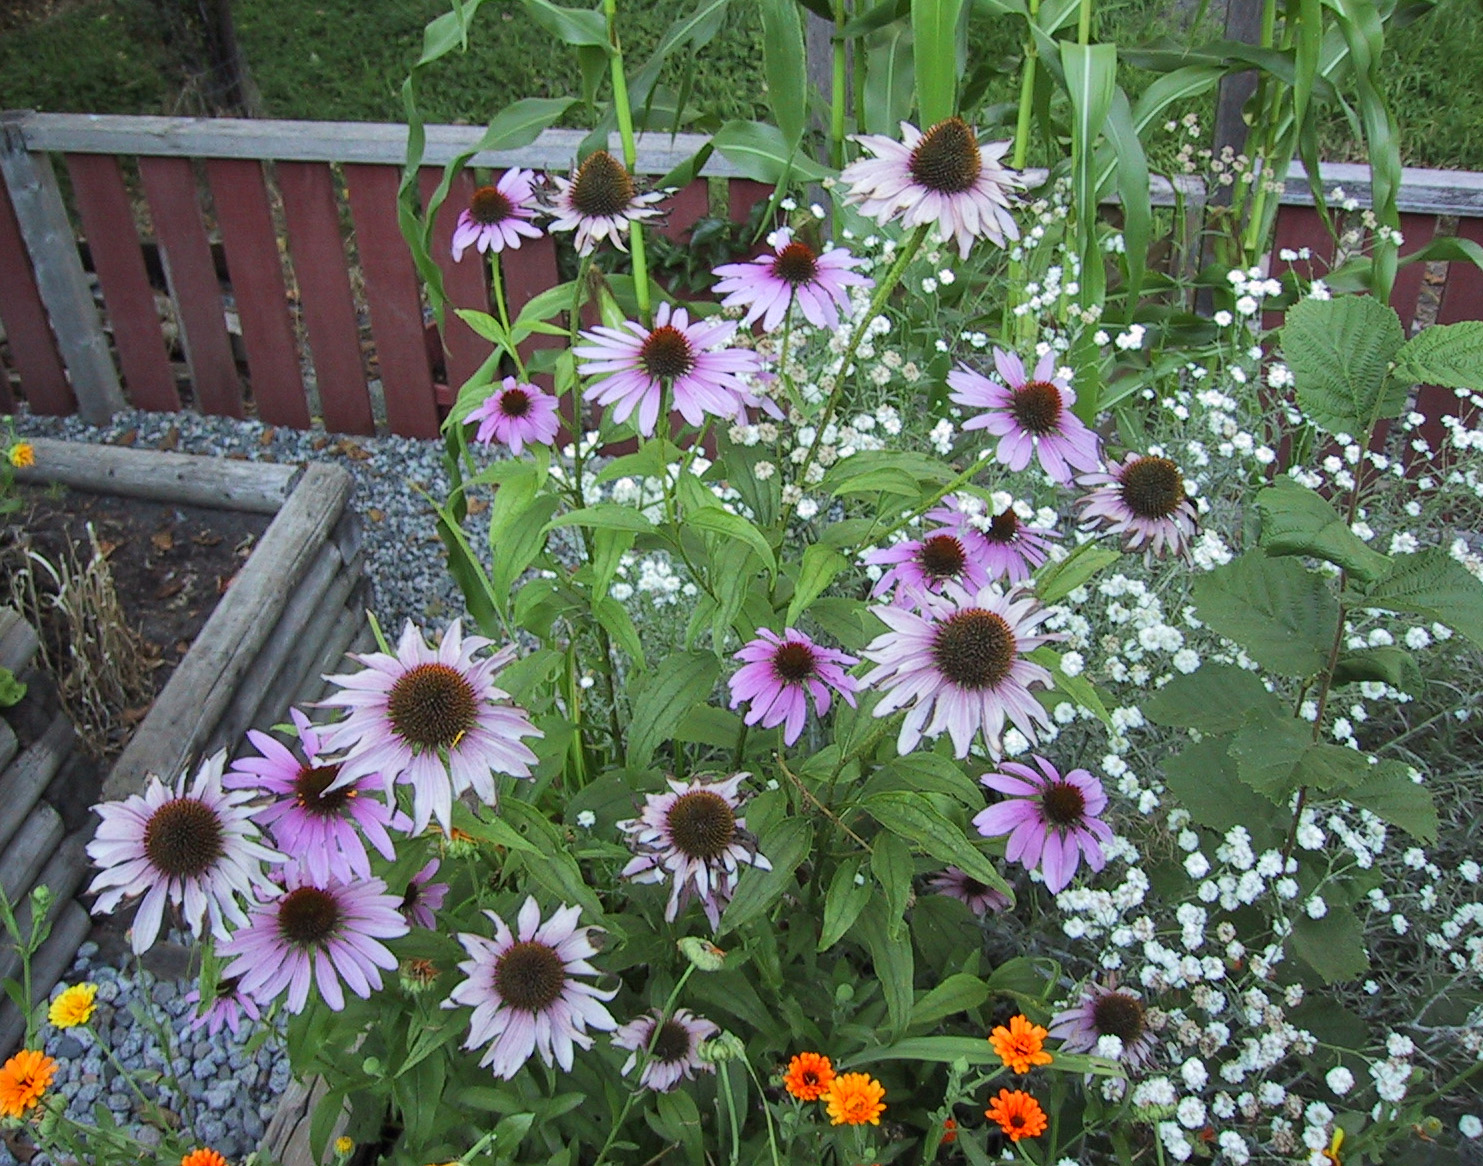 Echinacea history and uses